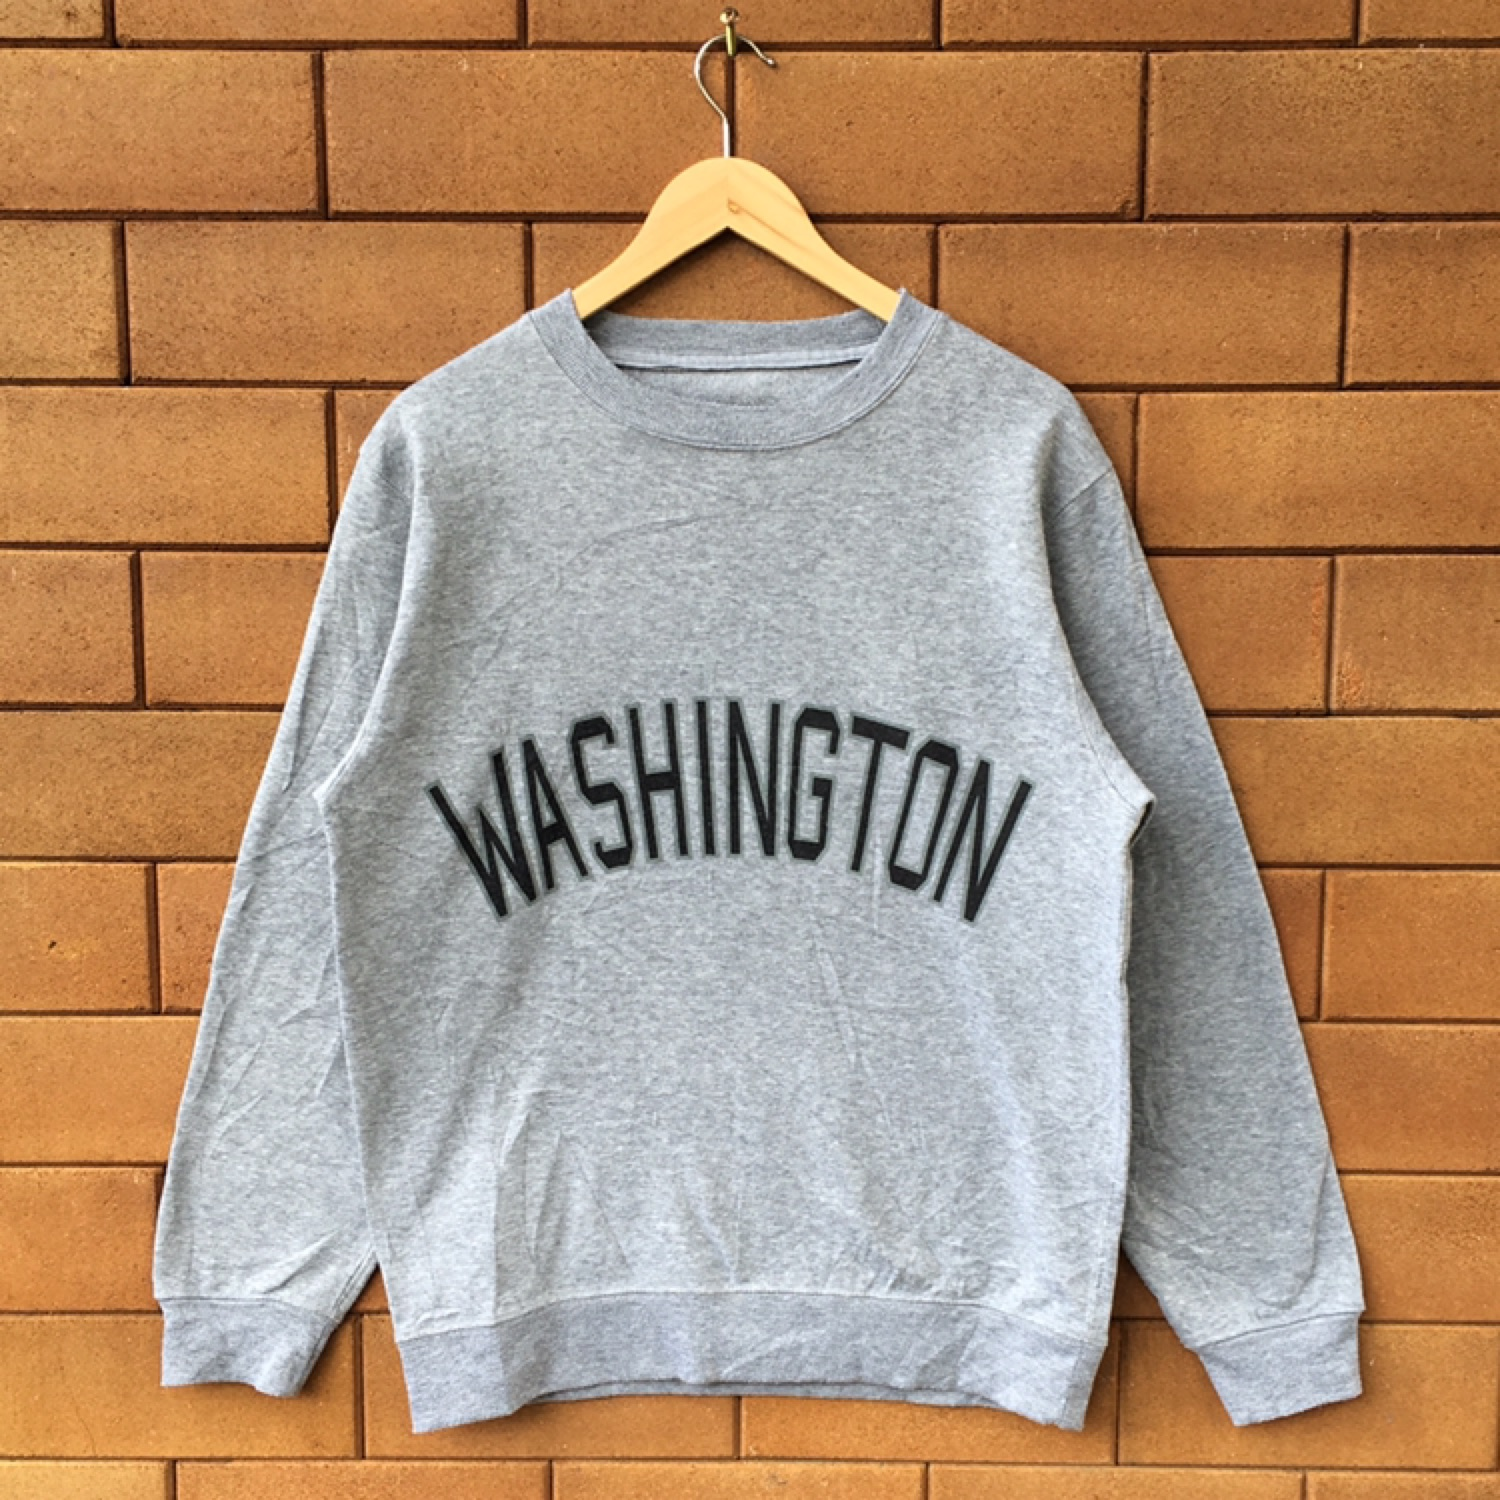 Vintage 90'S Washington Sweatshirt